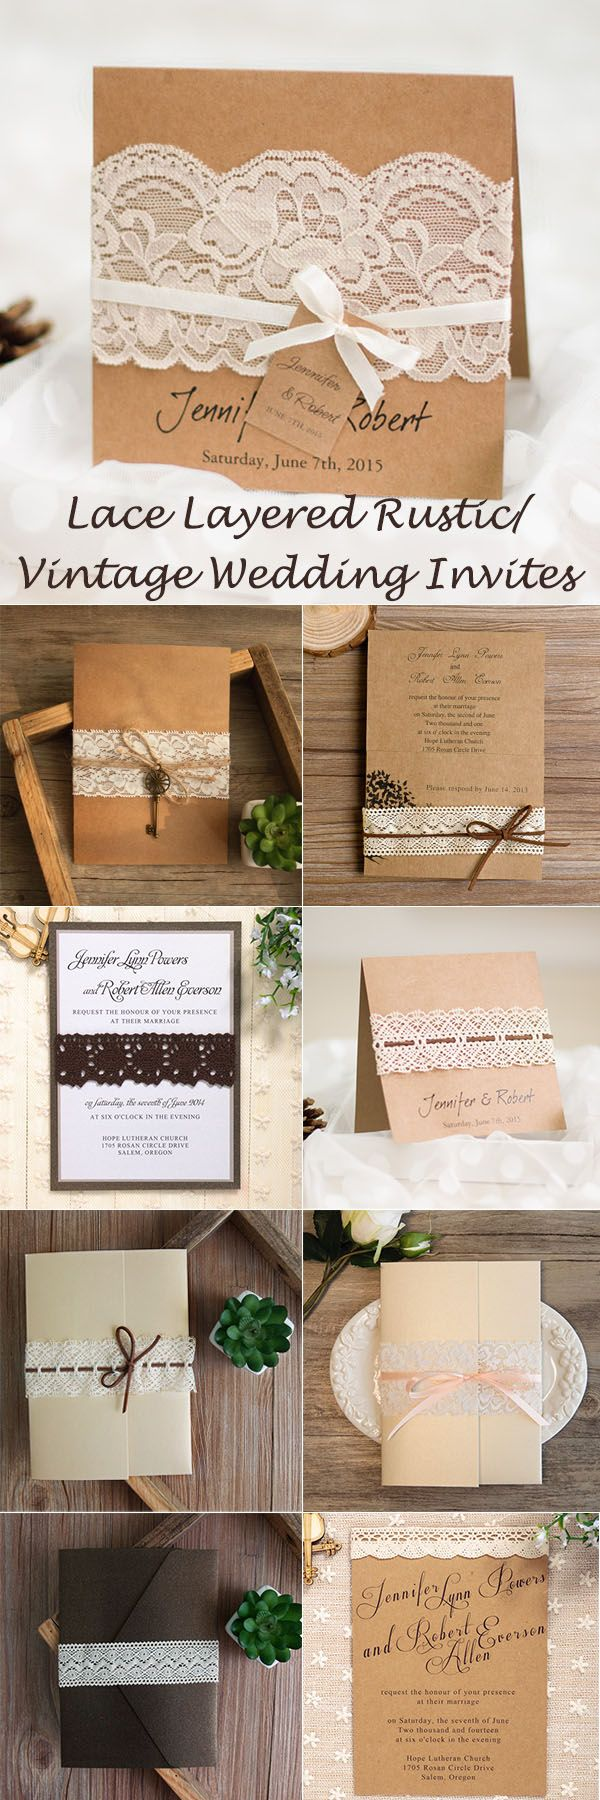 lace layered rustic and vintage wedding invitations